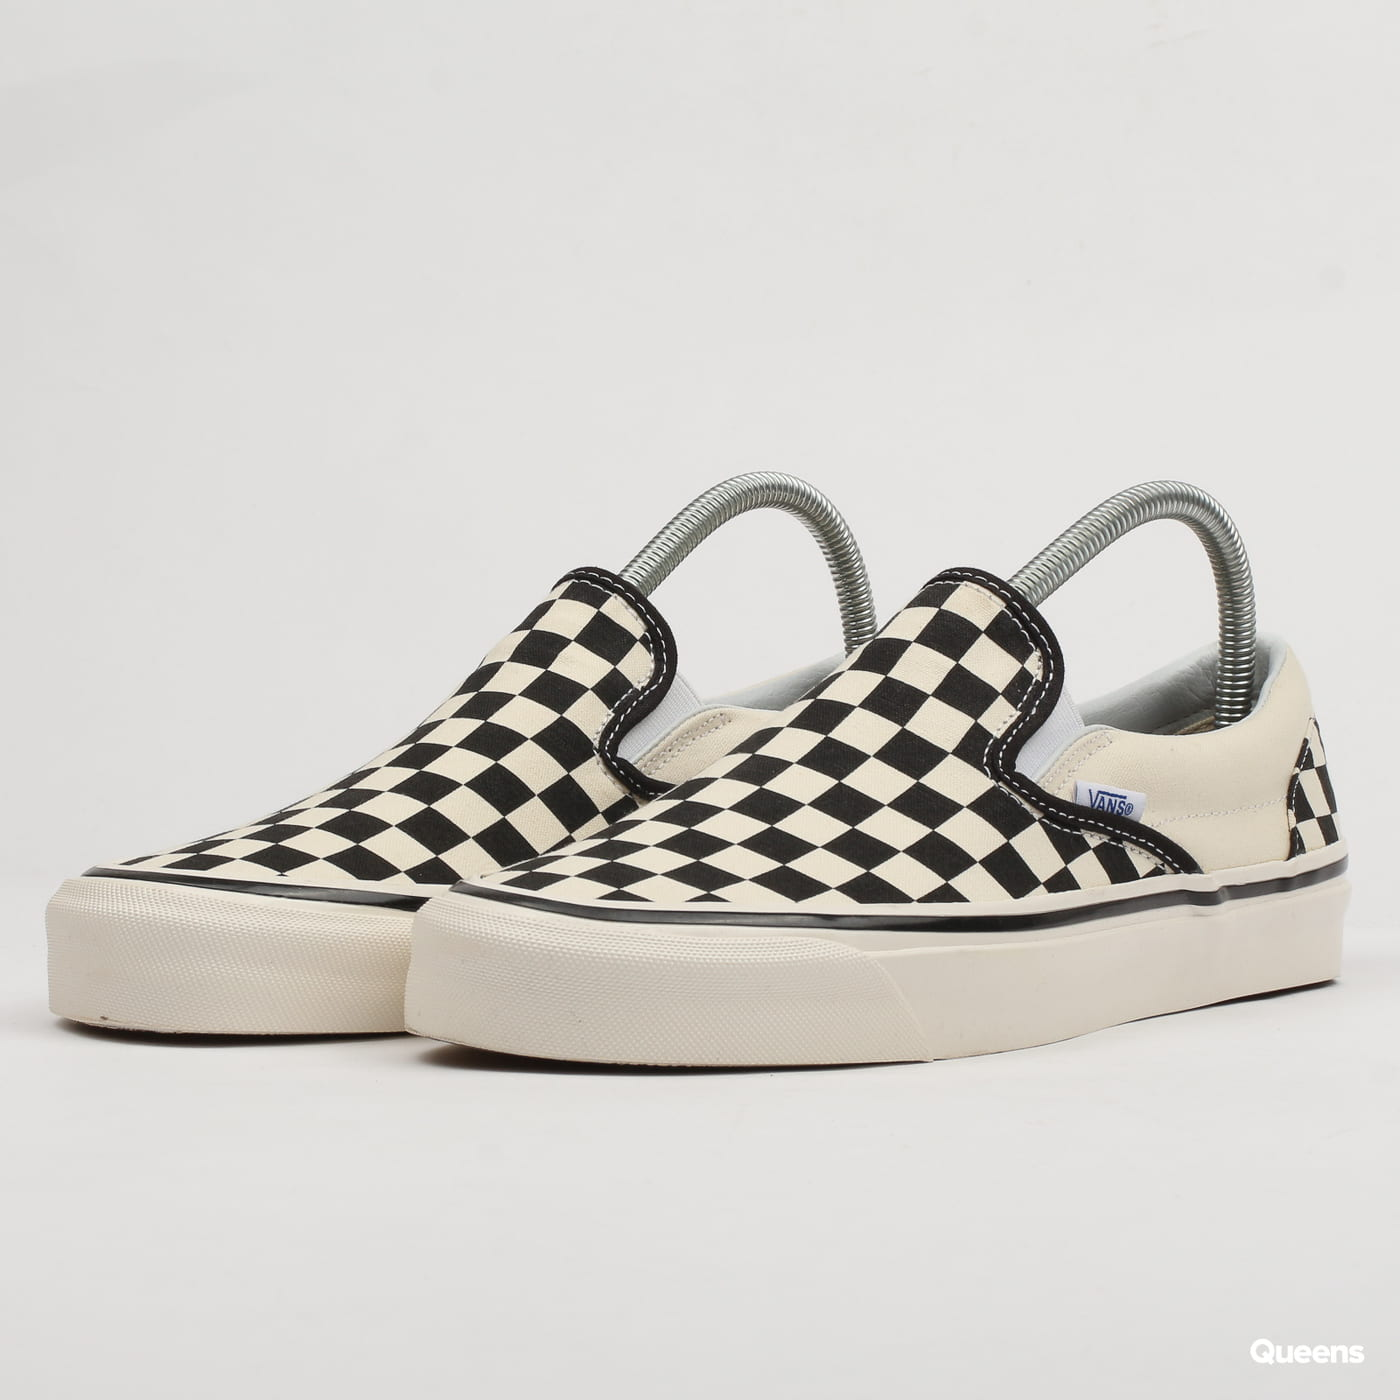 Vans Classic Slip-On 98 DX (anaheim factory) checker